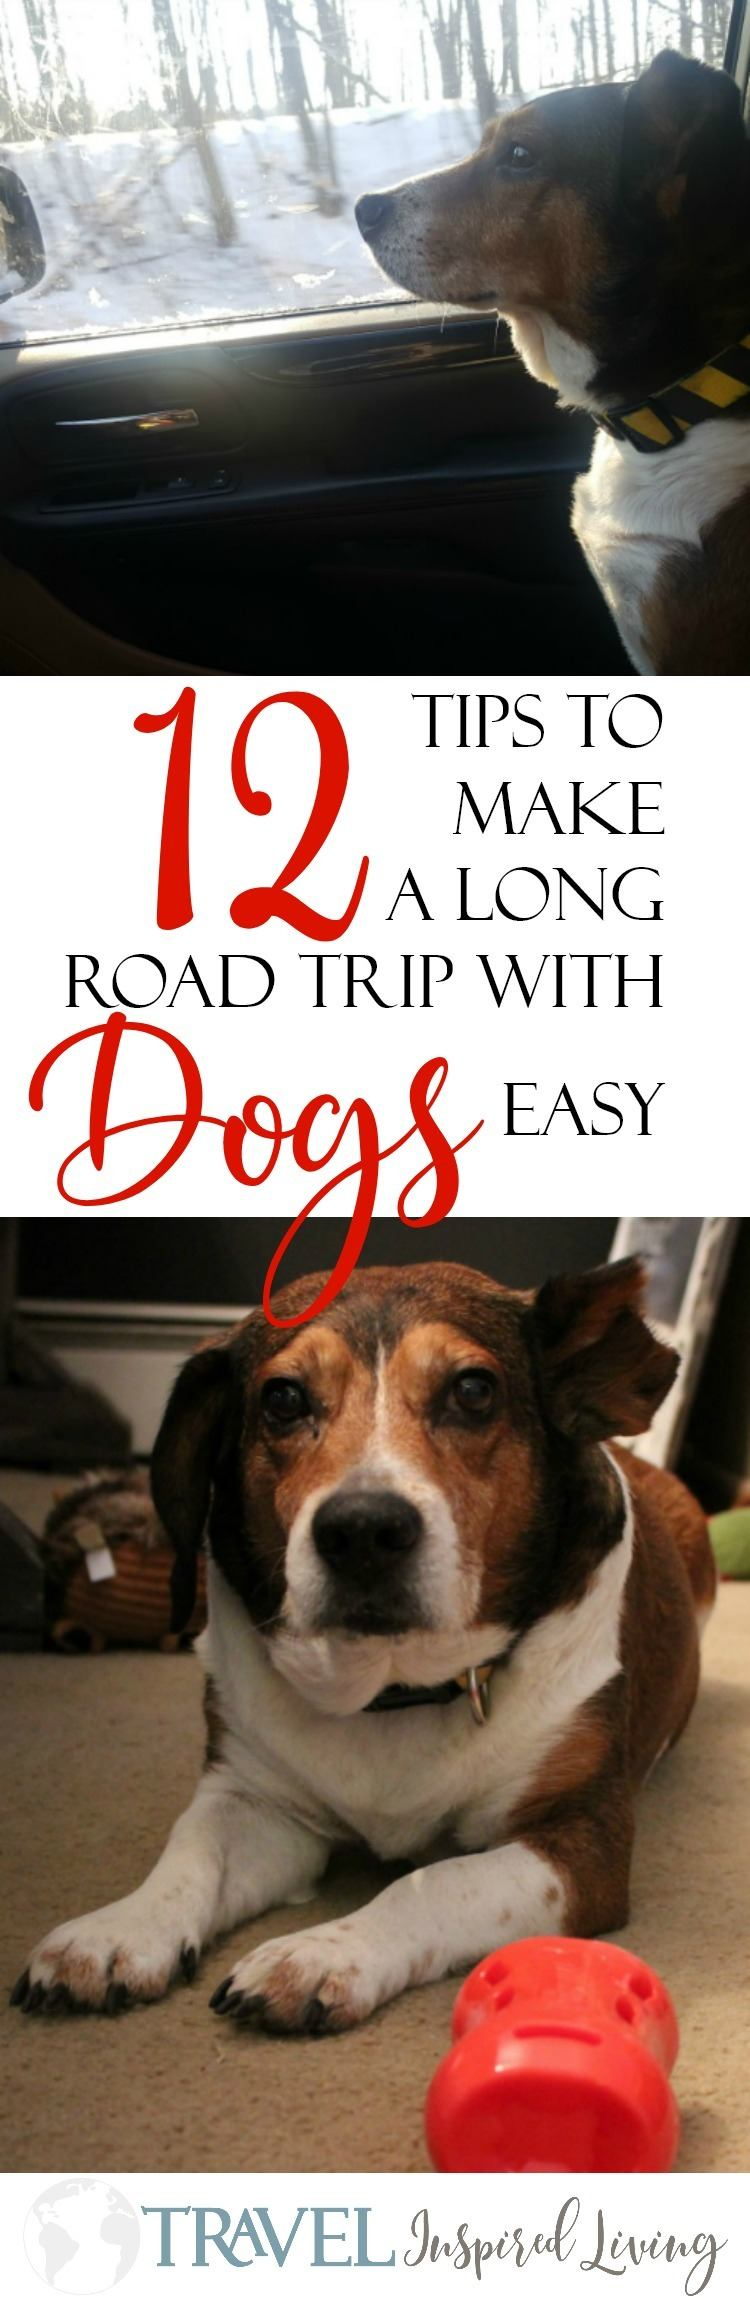 12 Tips to make a long road trip with your dog easy- including a list things you don't want to forget when you pack.